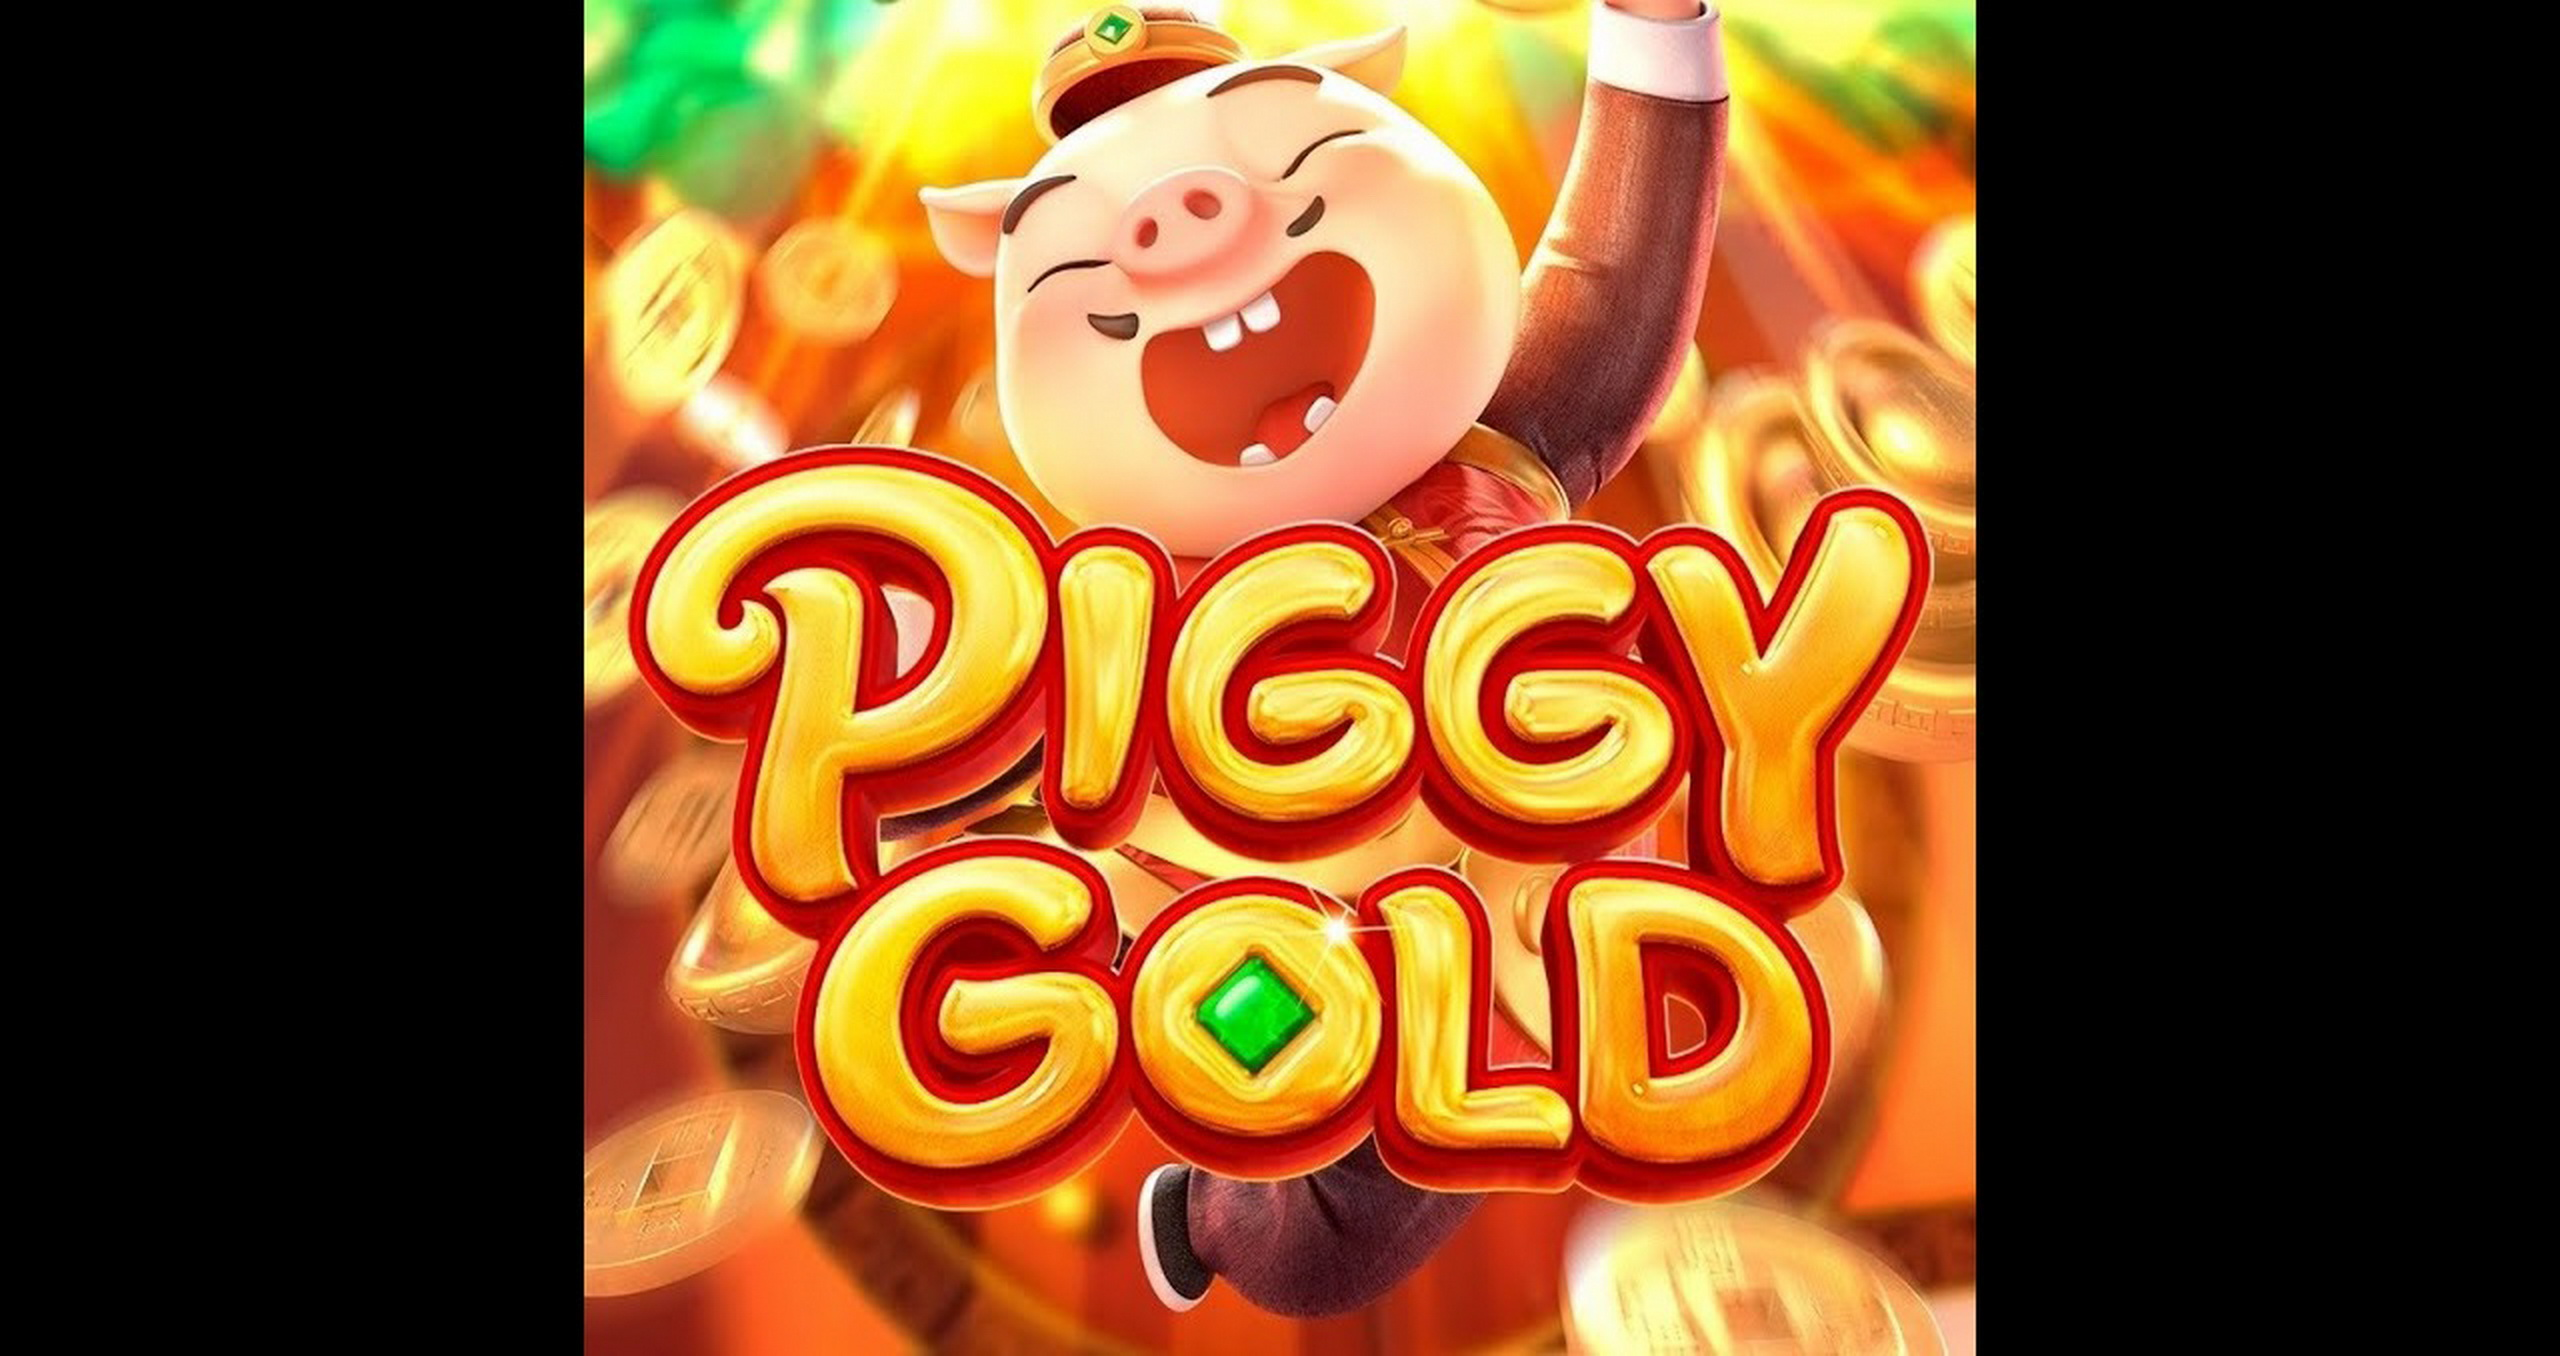 The Piggy Gold (PG Soft) Online Slot Demo Game by PG Soft